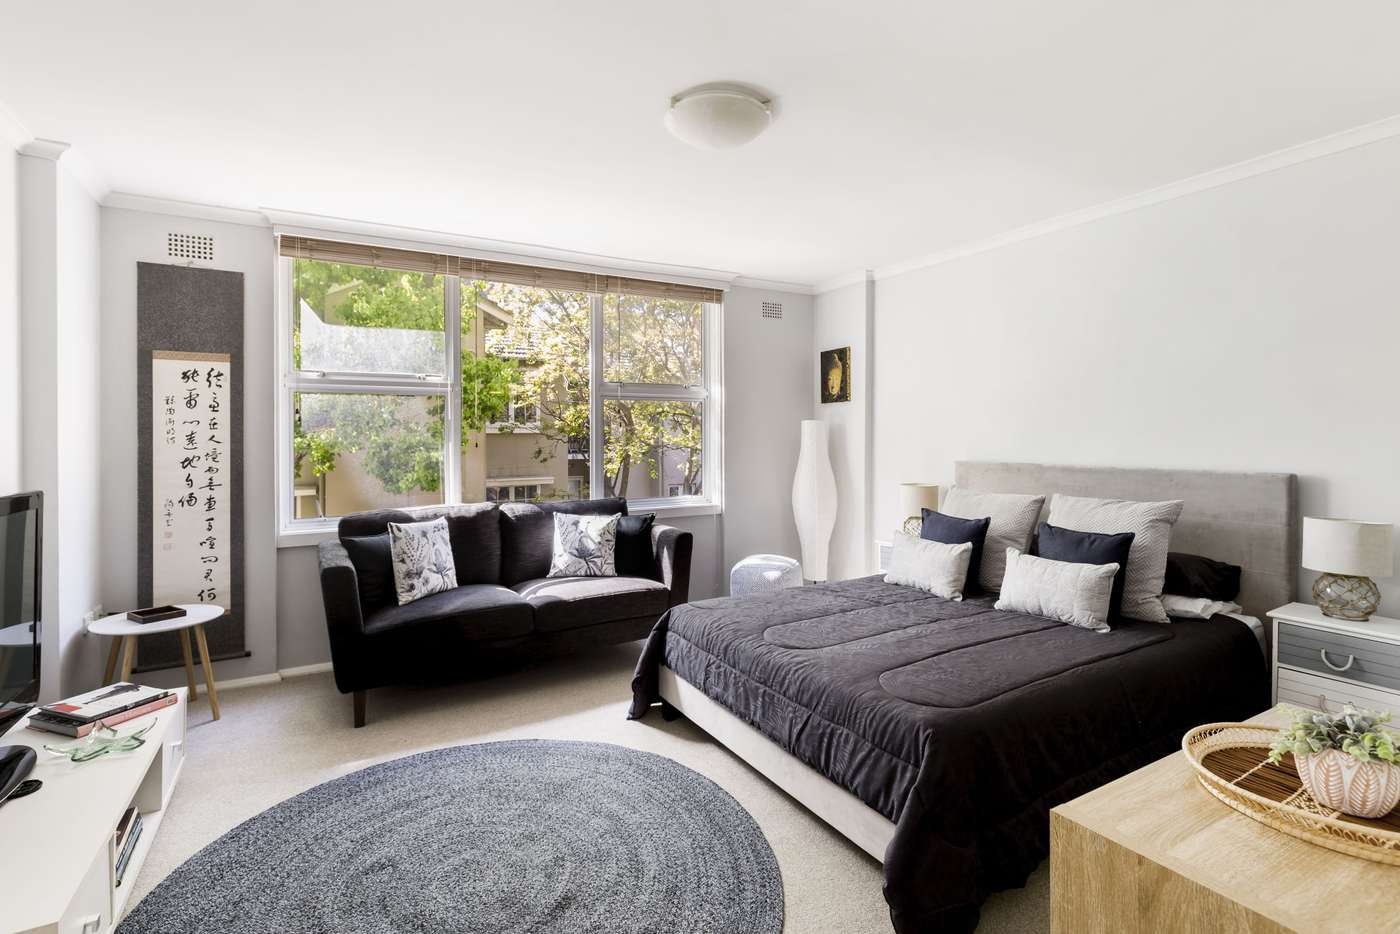 Main view of Homely studio listing, 39/1 McDonald Street, Potts Point NSW 2011